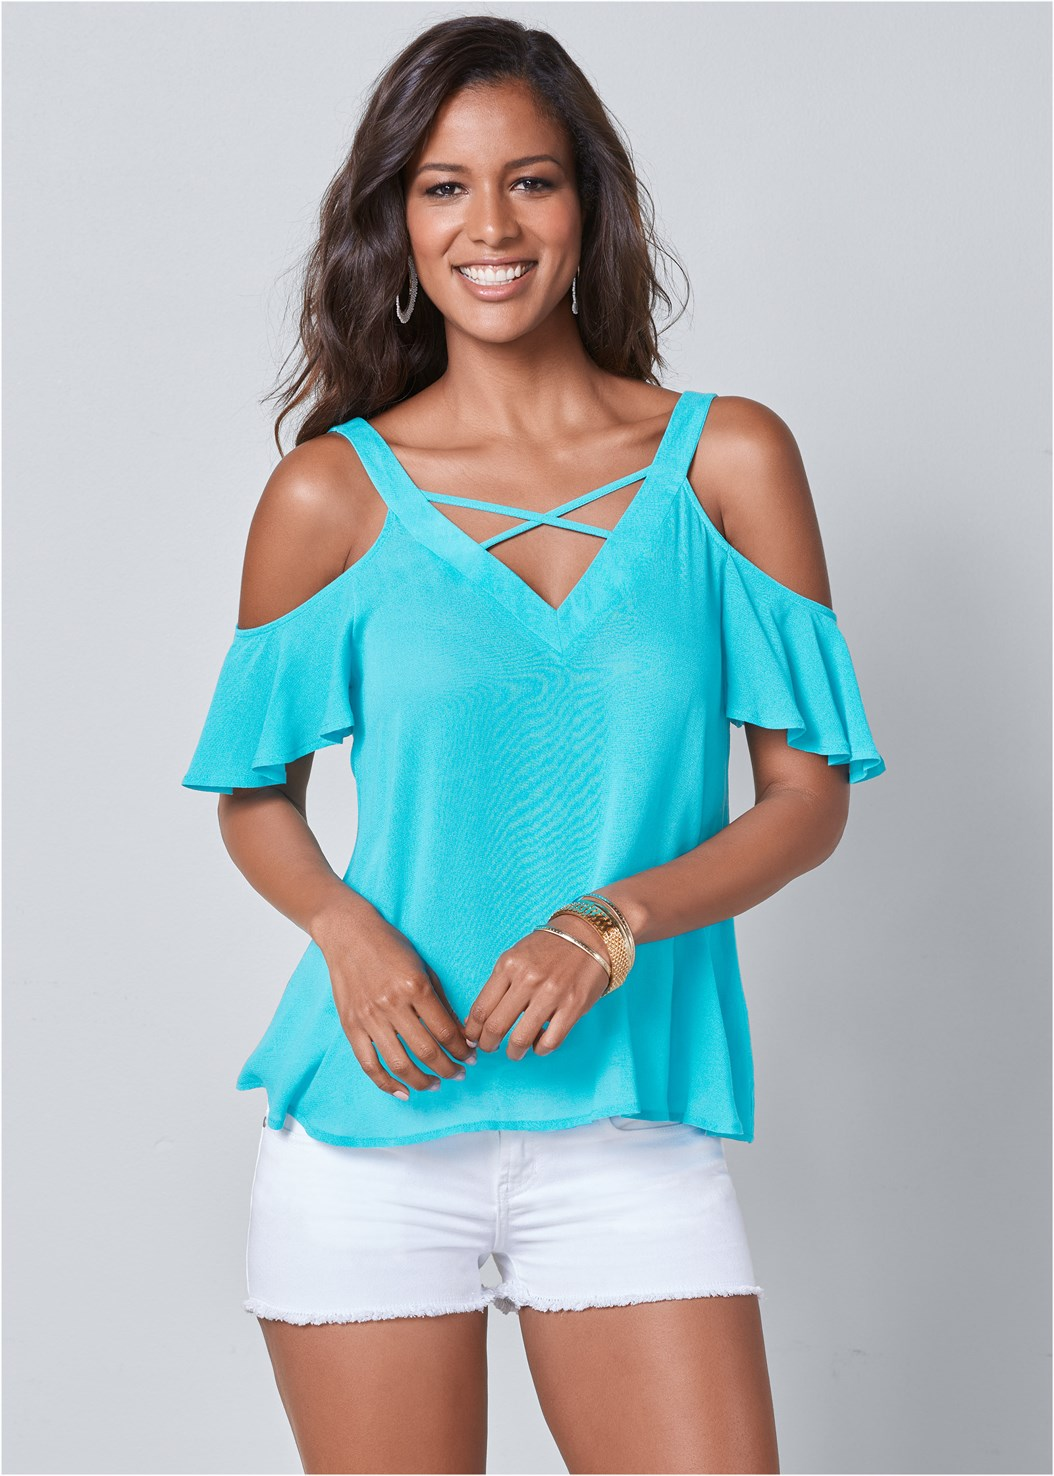 Strappy Detail V-Neck Top,Frayed Cut Off Jean Shorts